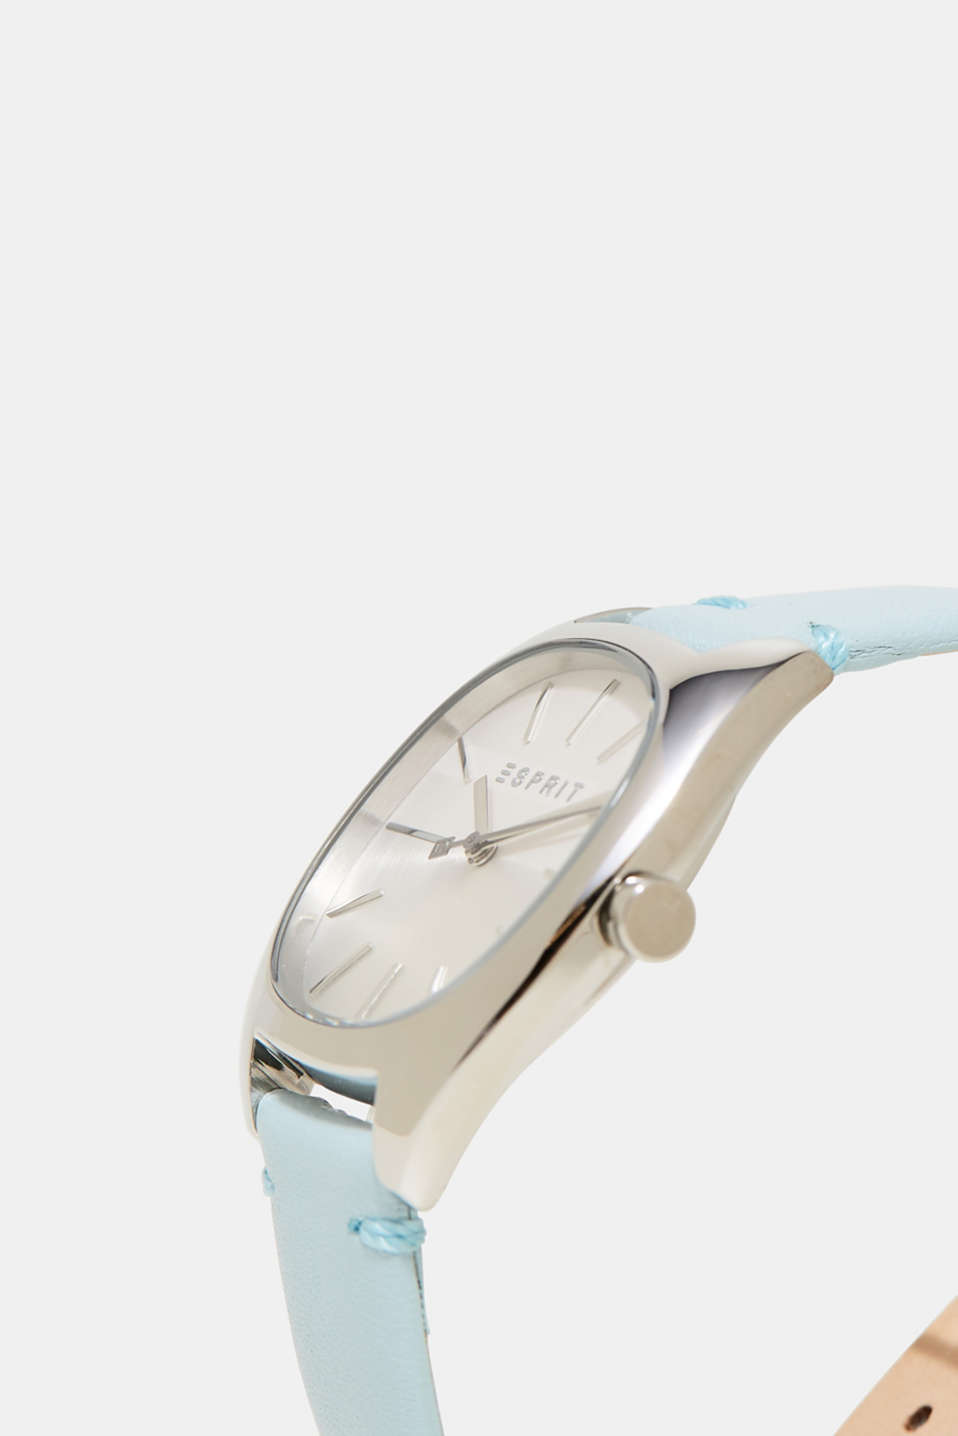 Watch with a rectangular casing